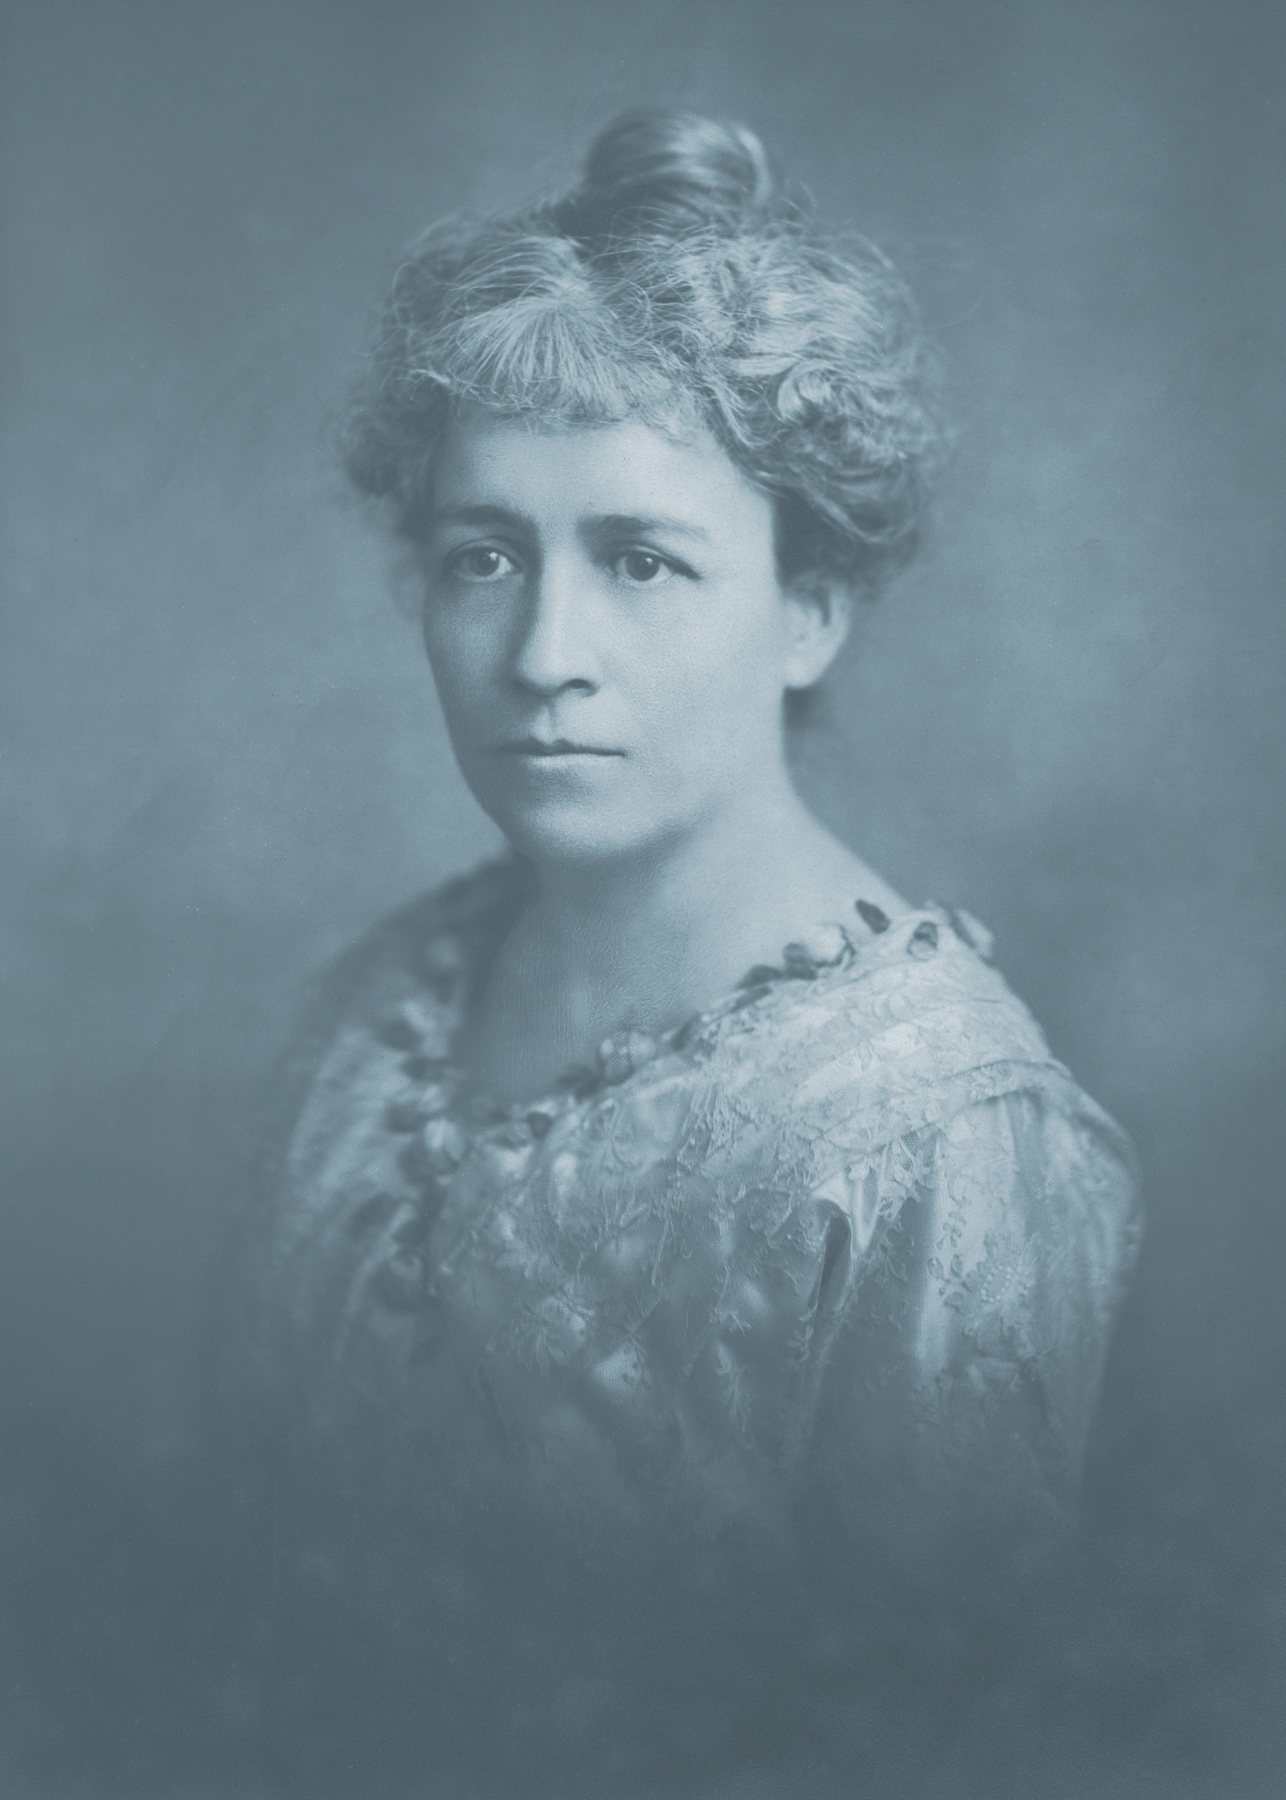 Vintage cyanotype portrait - circa 1918 photo